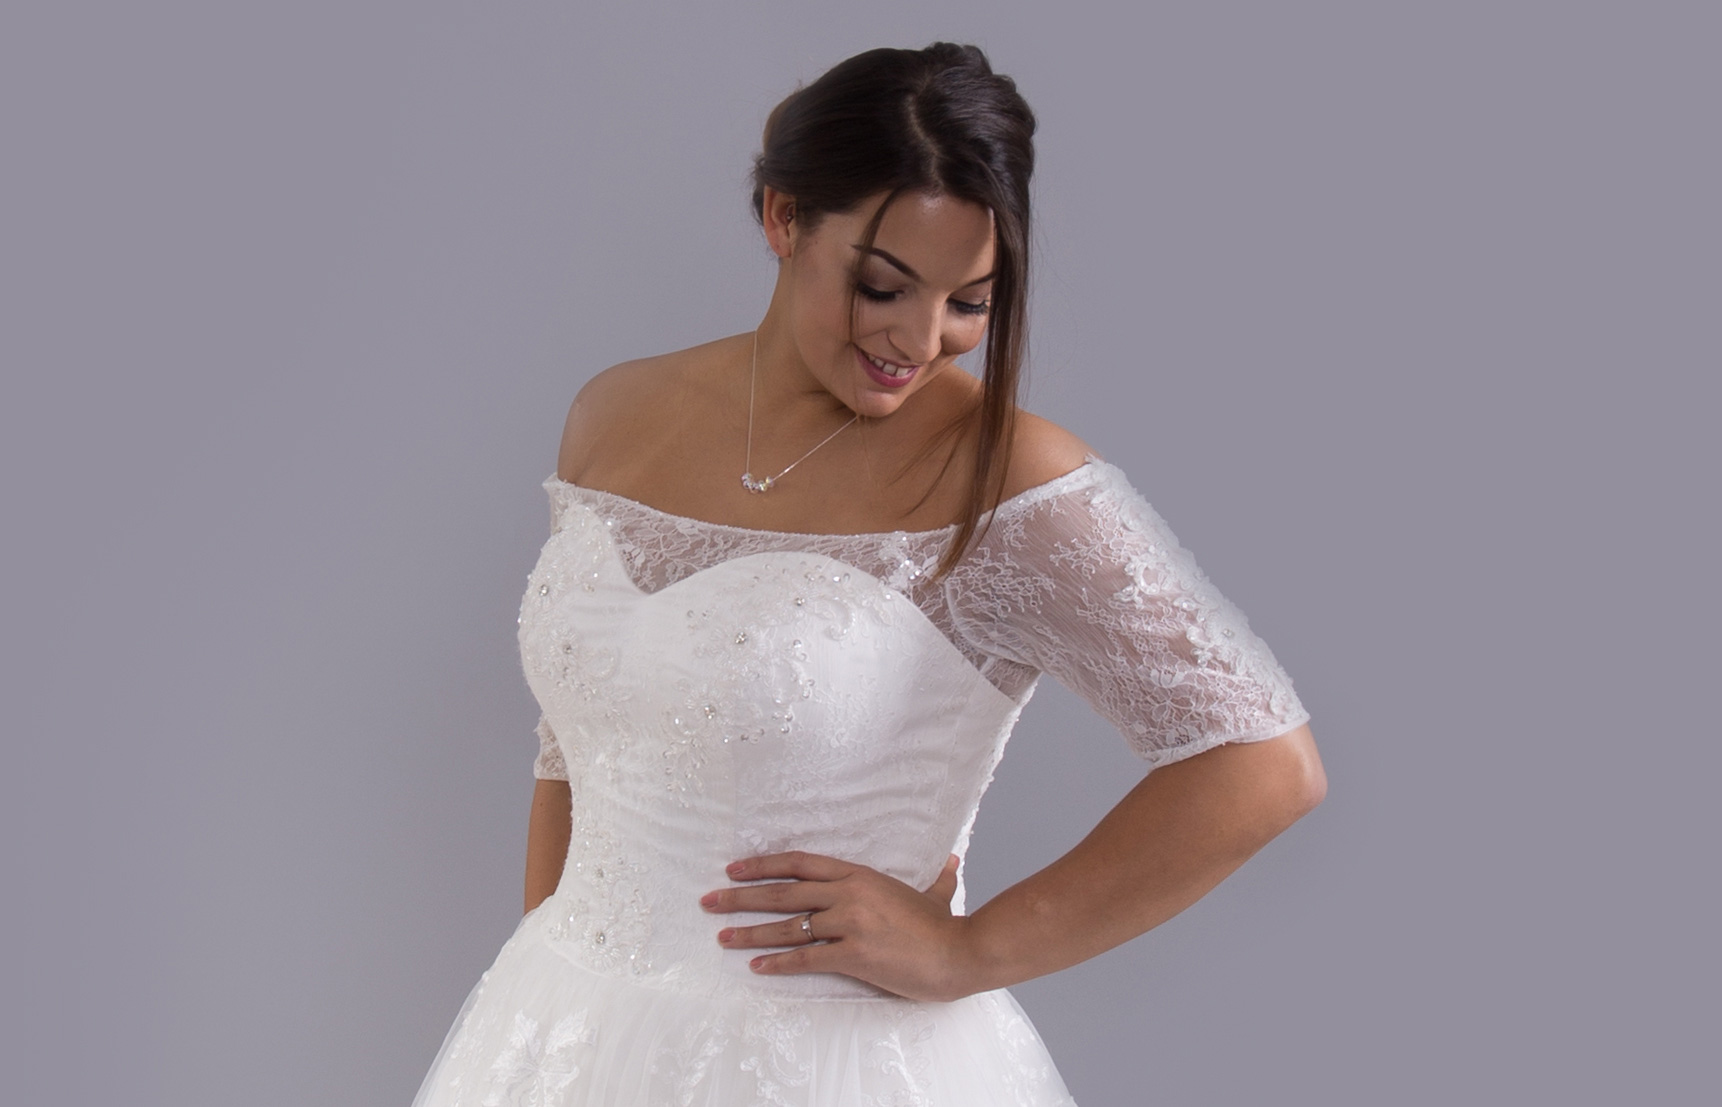 Wedding Dress Design - Draw Attention to Your Shoulders